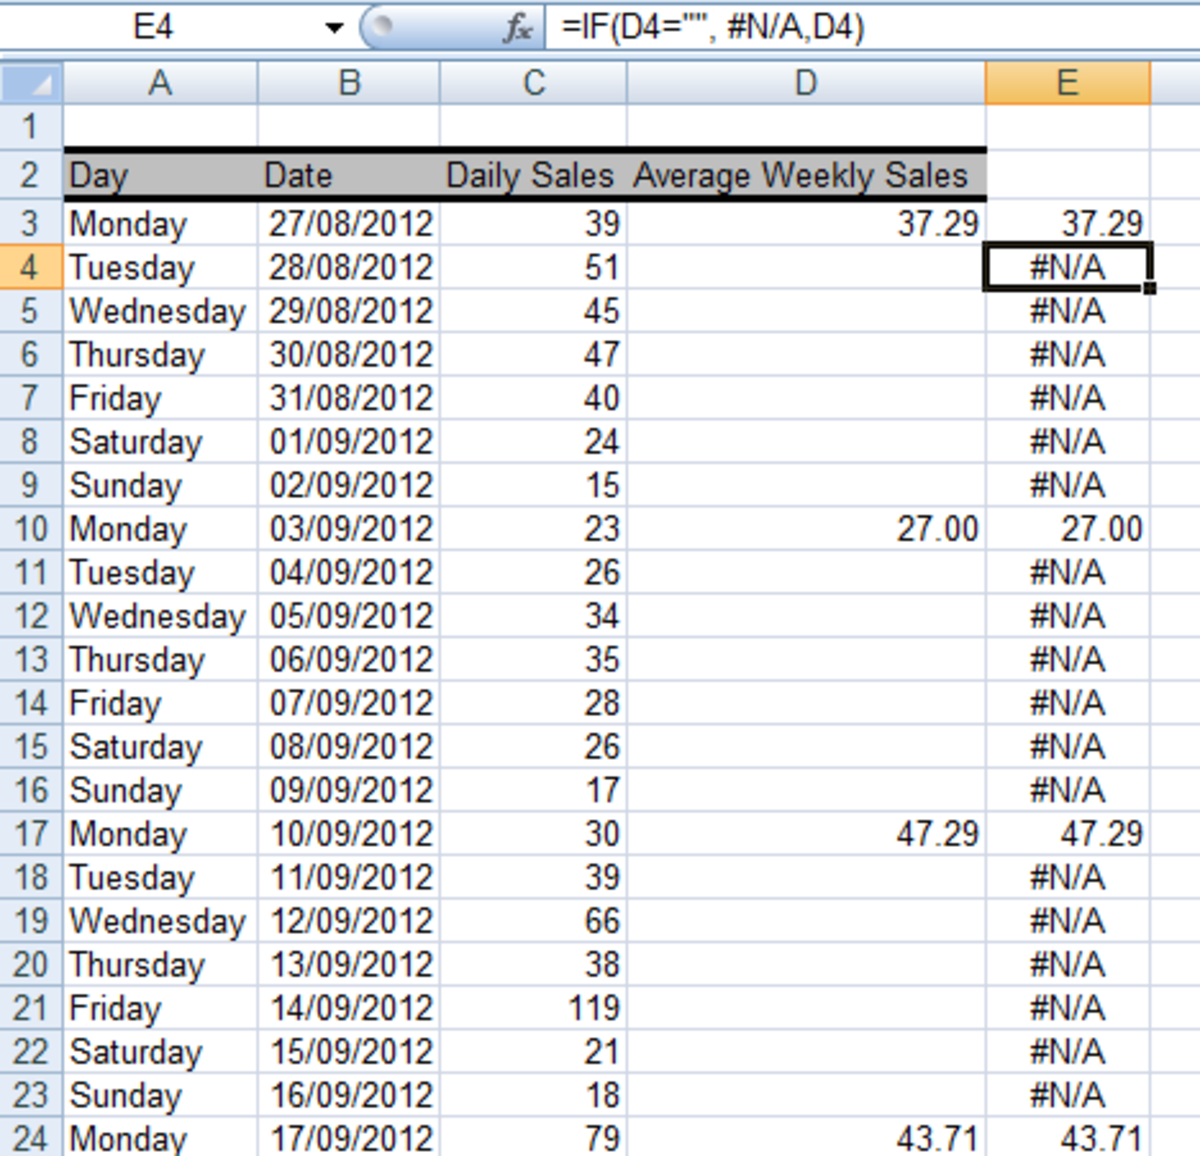 Ediblewildsus  Outstanding How To Get Excel  And  To Ignore Empty Cells In A Chart Or  With Goodlooking Using The If Function In A Formula To Convert Empty Cells To Na With Extraordinary How To Compare Excel Spreadsheets Also Remove Leading Space Excel In Addition Insert Rows In Excel Shortcut And Excel Amortization Calculator As Well As Excel Formula To Find Percentage Additionally Payback Excel From Turbofuturecom With Ediblewildsus  Goodlooking How To Get Excel  And  To Ignore Empty Cells In A Chart Or  With Extraordinary Using The If Function In A Formula To Convert Empty Cells To Na And Outstanding How To Compare Excel Spreadsheets Also Remove Leading Space Excel In Addition Insert Rows In Excel Shortcut From Turbofuturecom